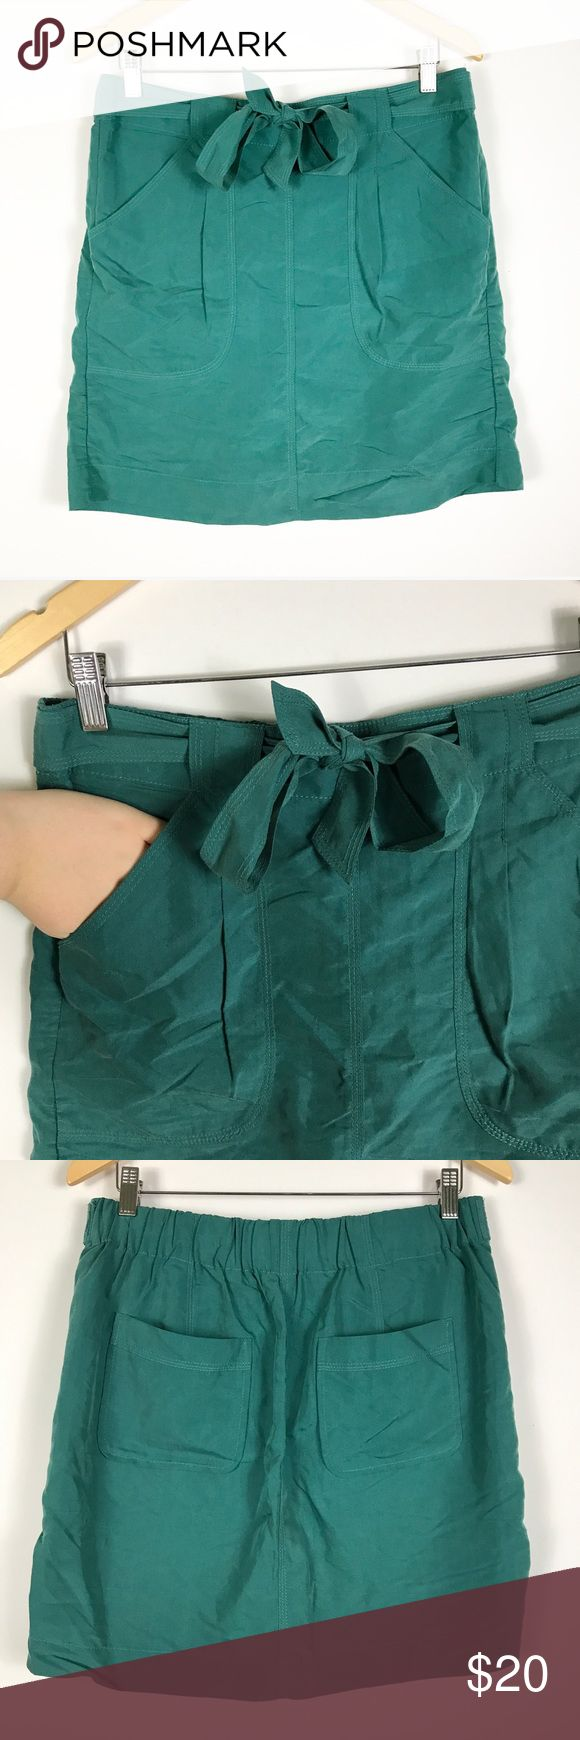 """Gap M teal tie front pocket skirt Gap M teal tie front pocket skirt. Measures approx 16.5"""" unstretched elastic waist 19.5""""h 18.5""""long laying flat. Great condition! GAP Skirts"""